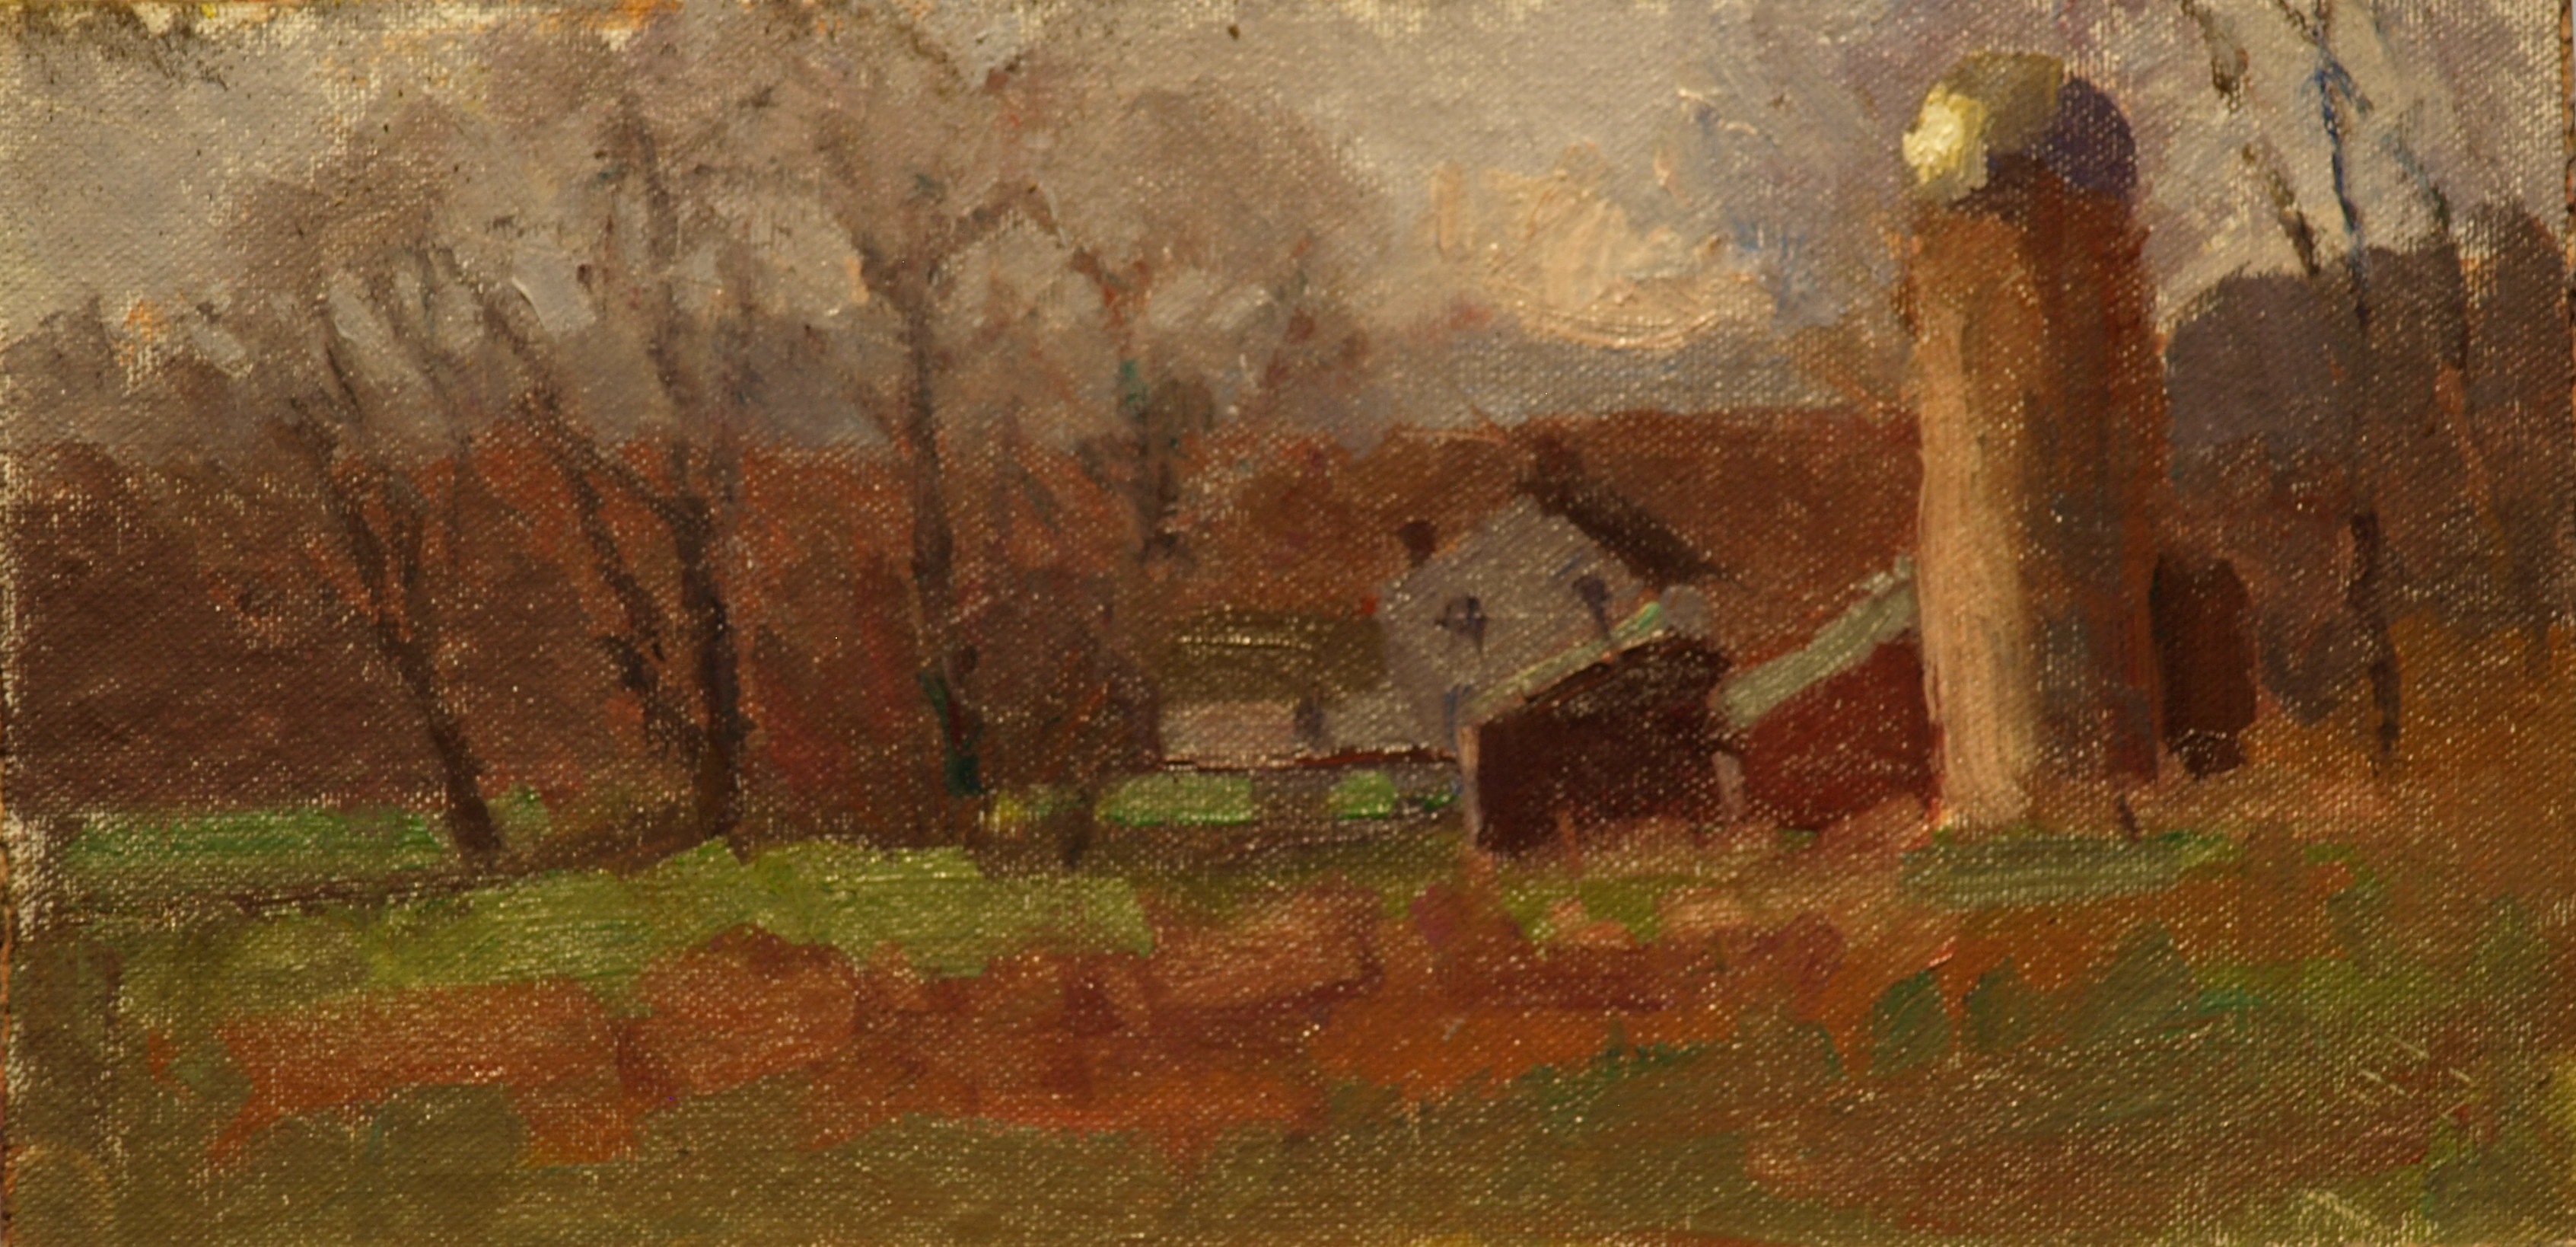 Lindburgh Farm, Oil on Canvas on Panel, 6 x 12 Inches, by Susan Grisell, $150